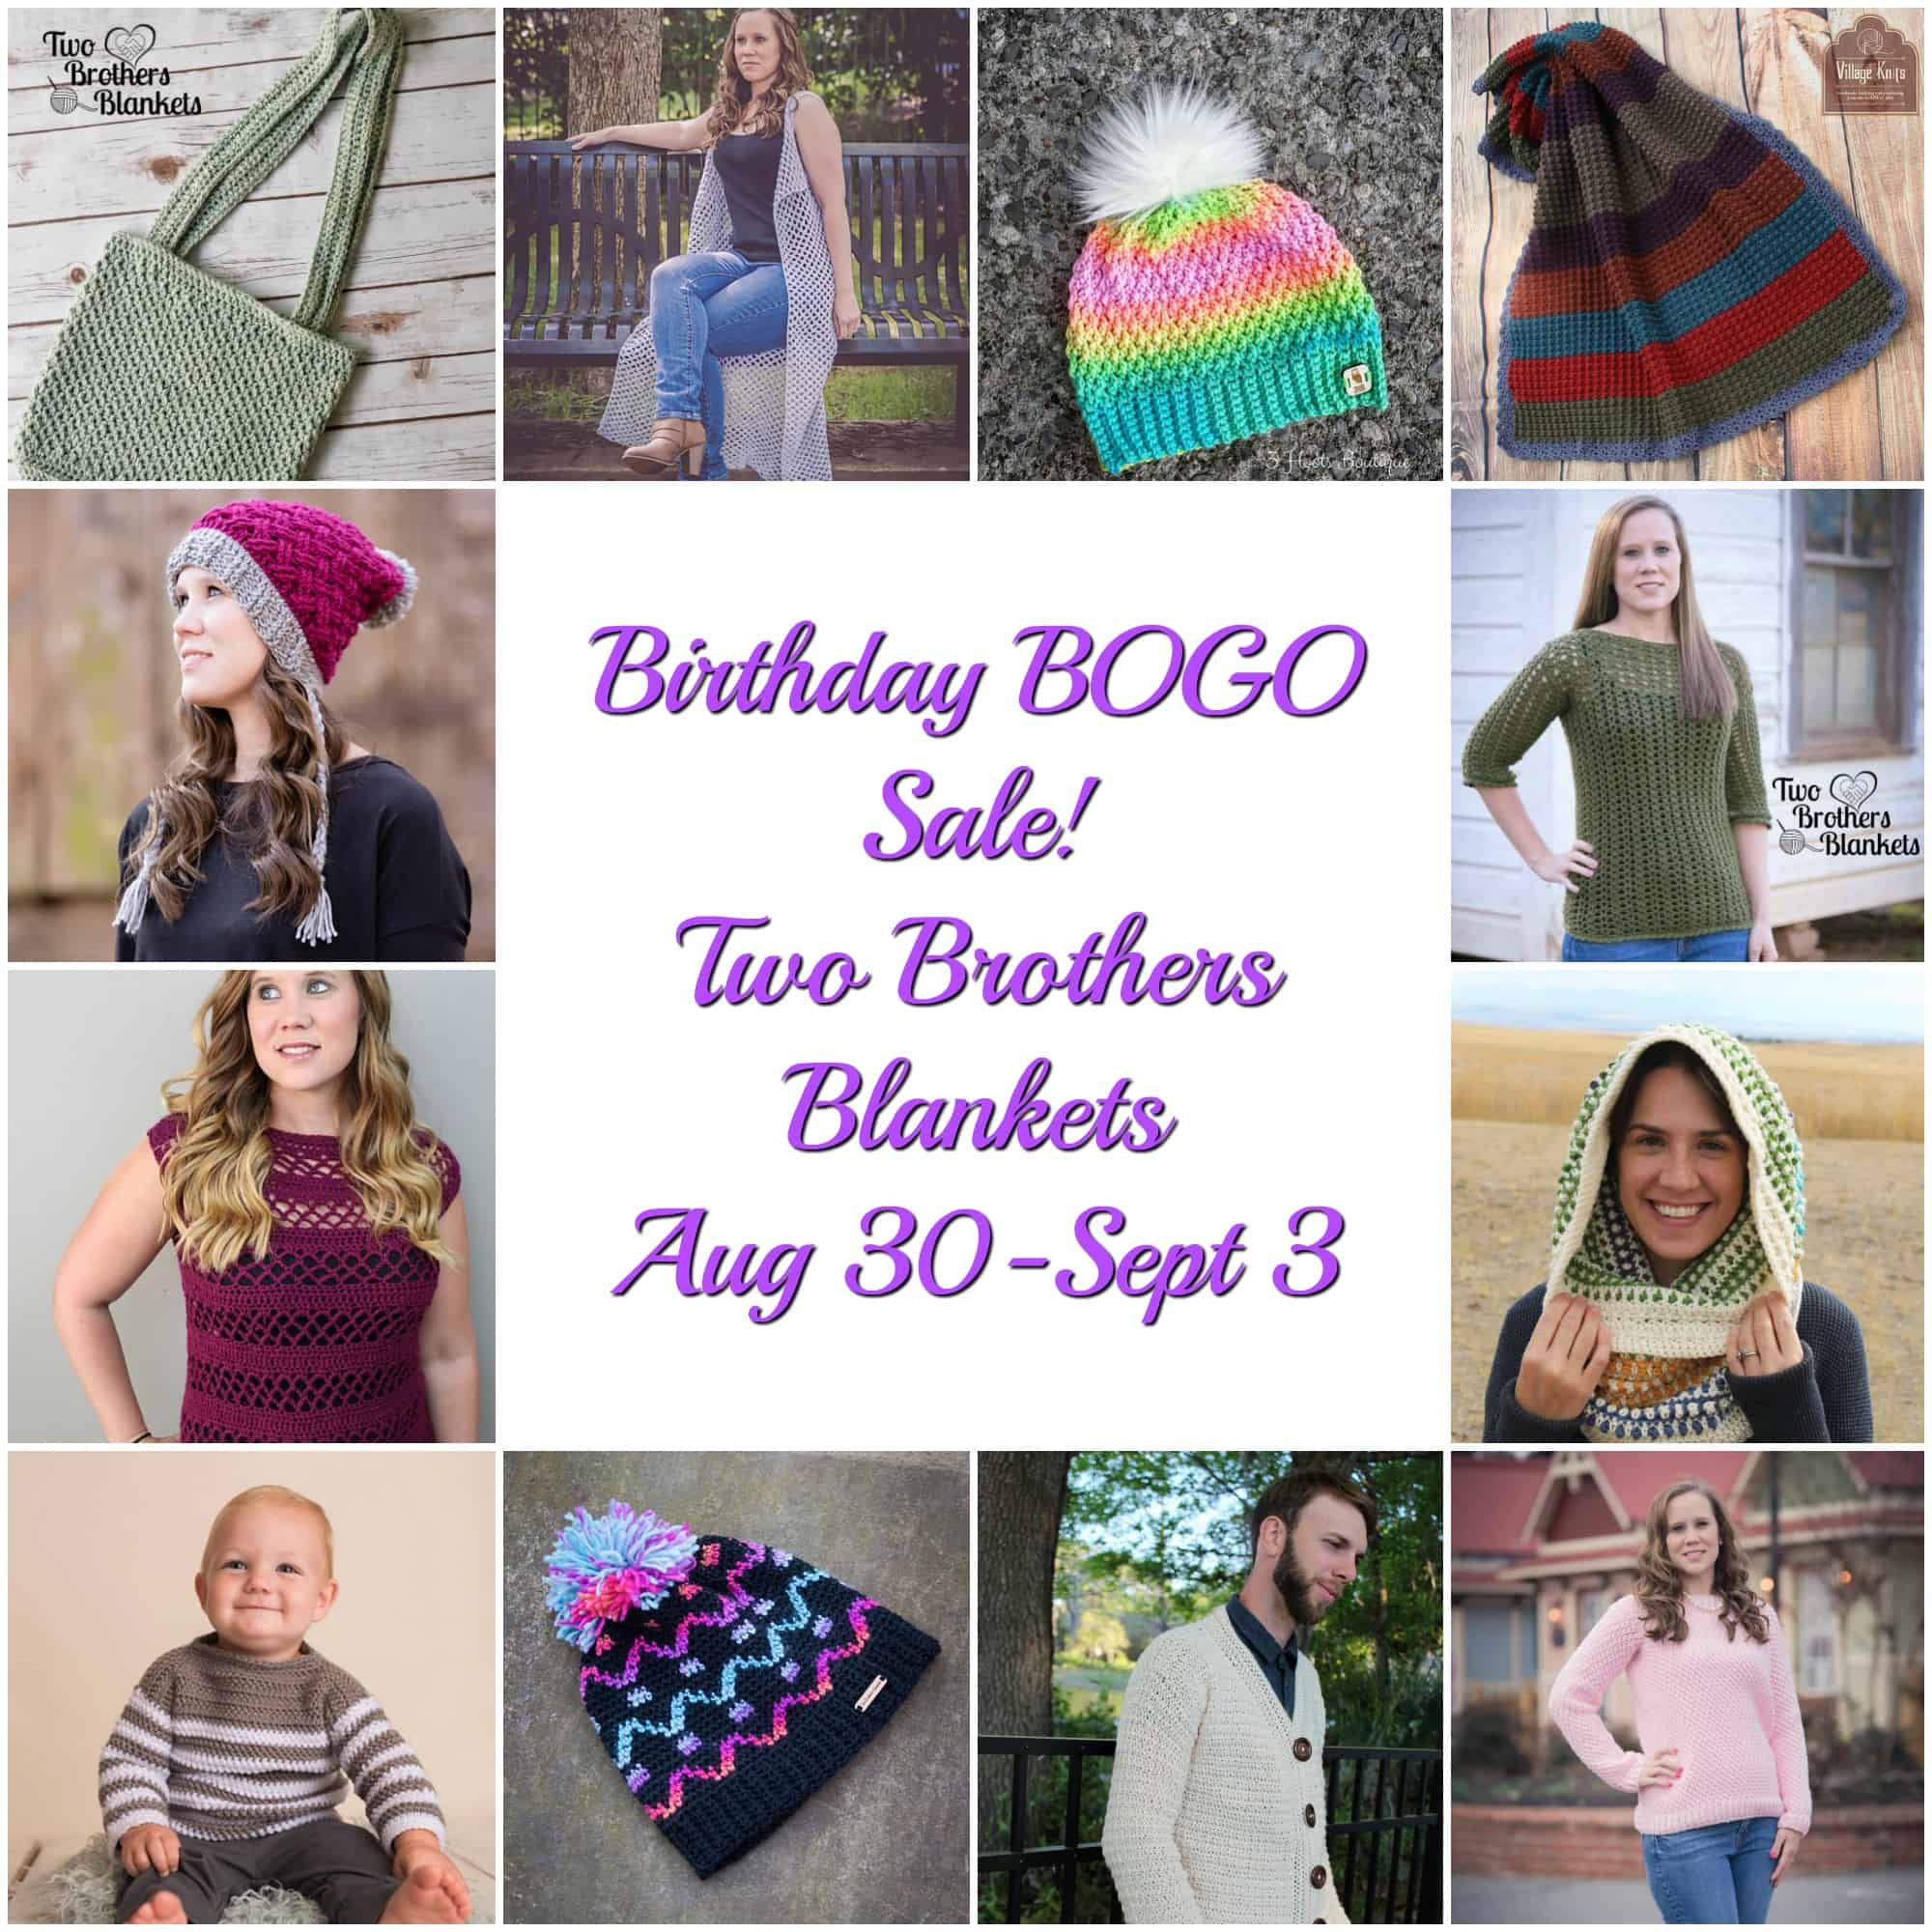 Birthday BOGO sale